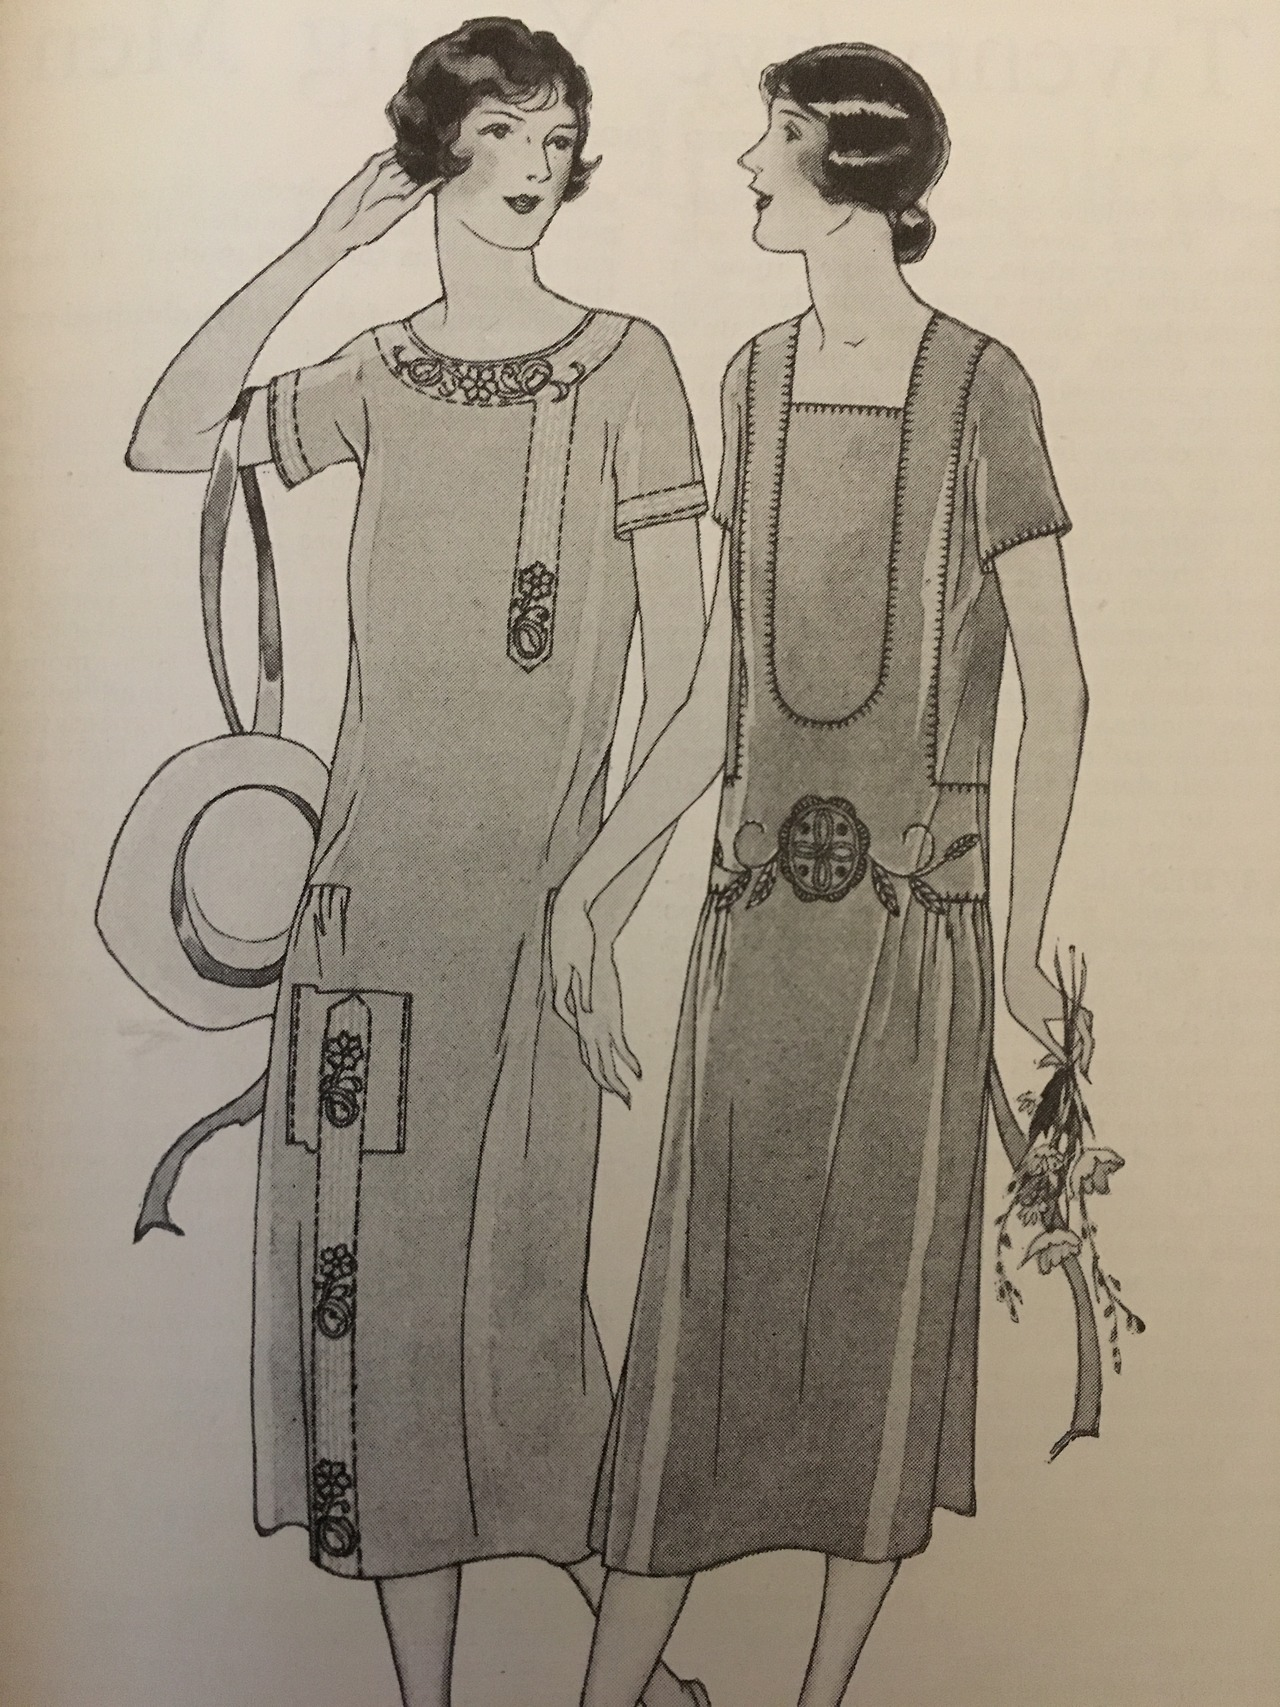 For your summer vacation wardrobe.  Woman's Home Companion. July 1925.  I do know that some of you are looking for more 1920s content. Here's an image from a bound edition of Woman's Home Companion that I recently added to my collection.